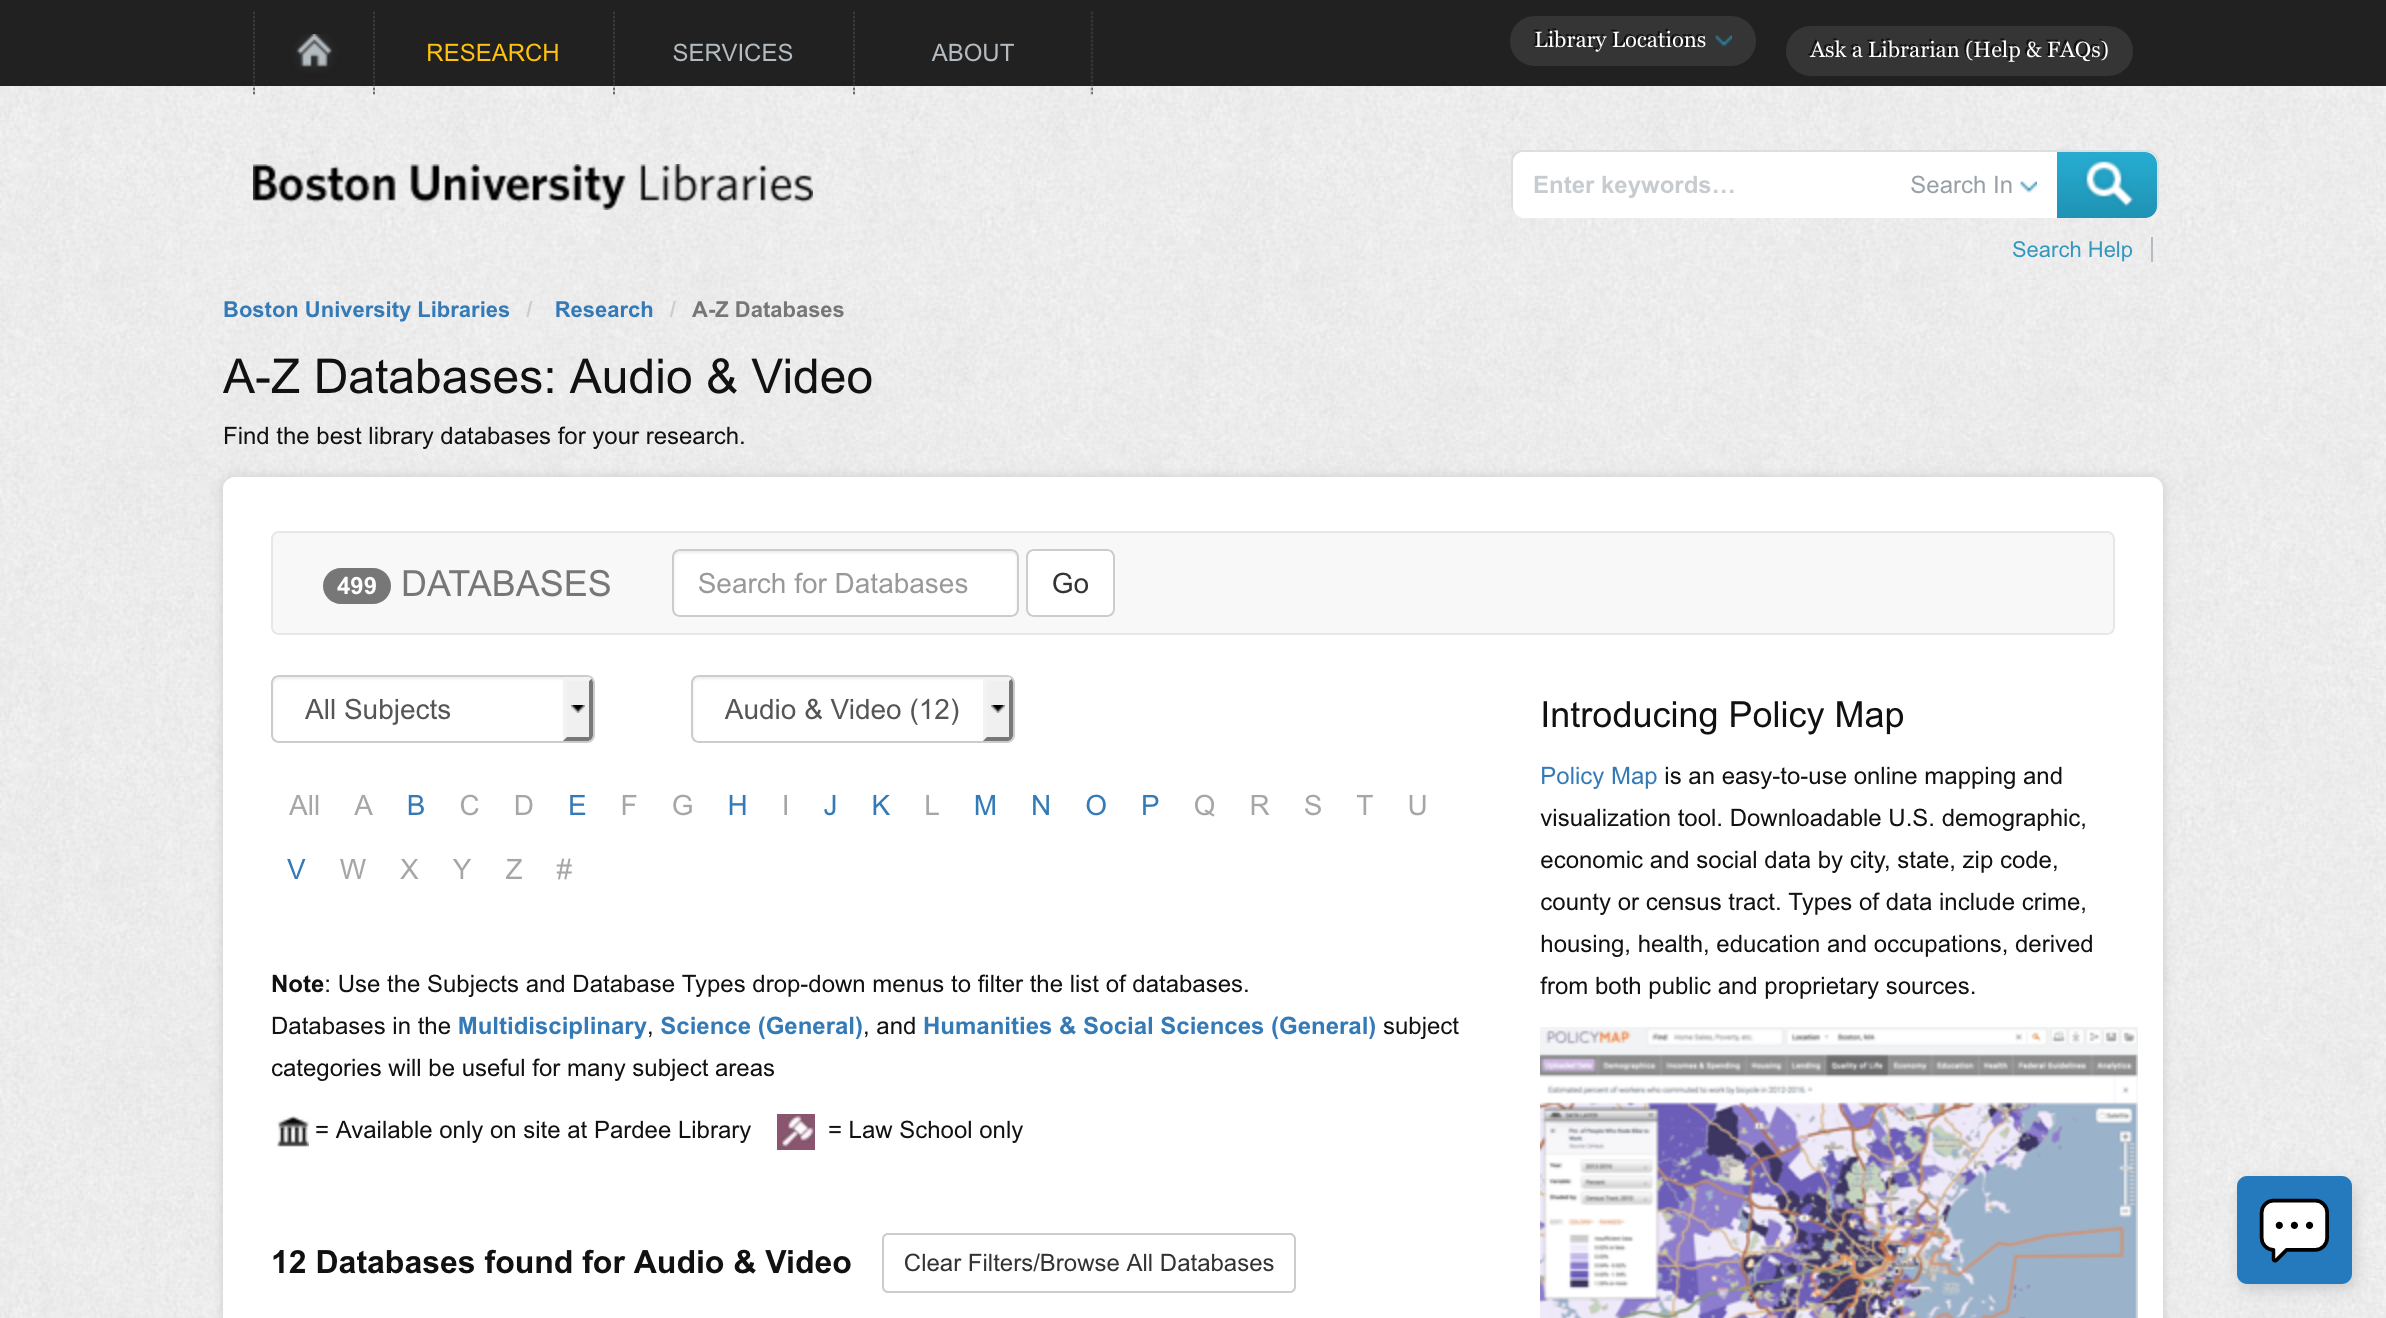 A-Z Databases: Audio & Video